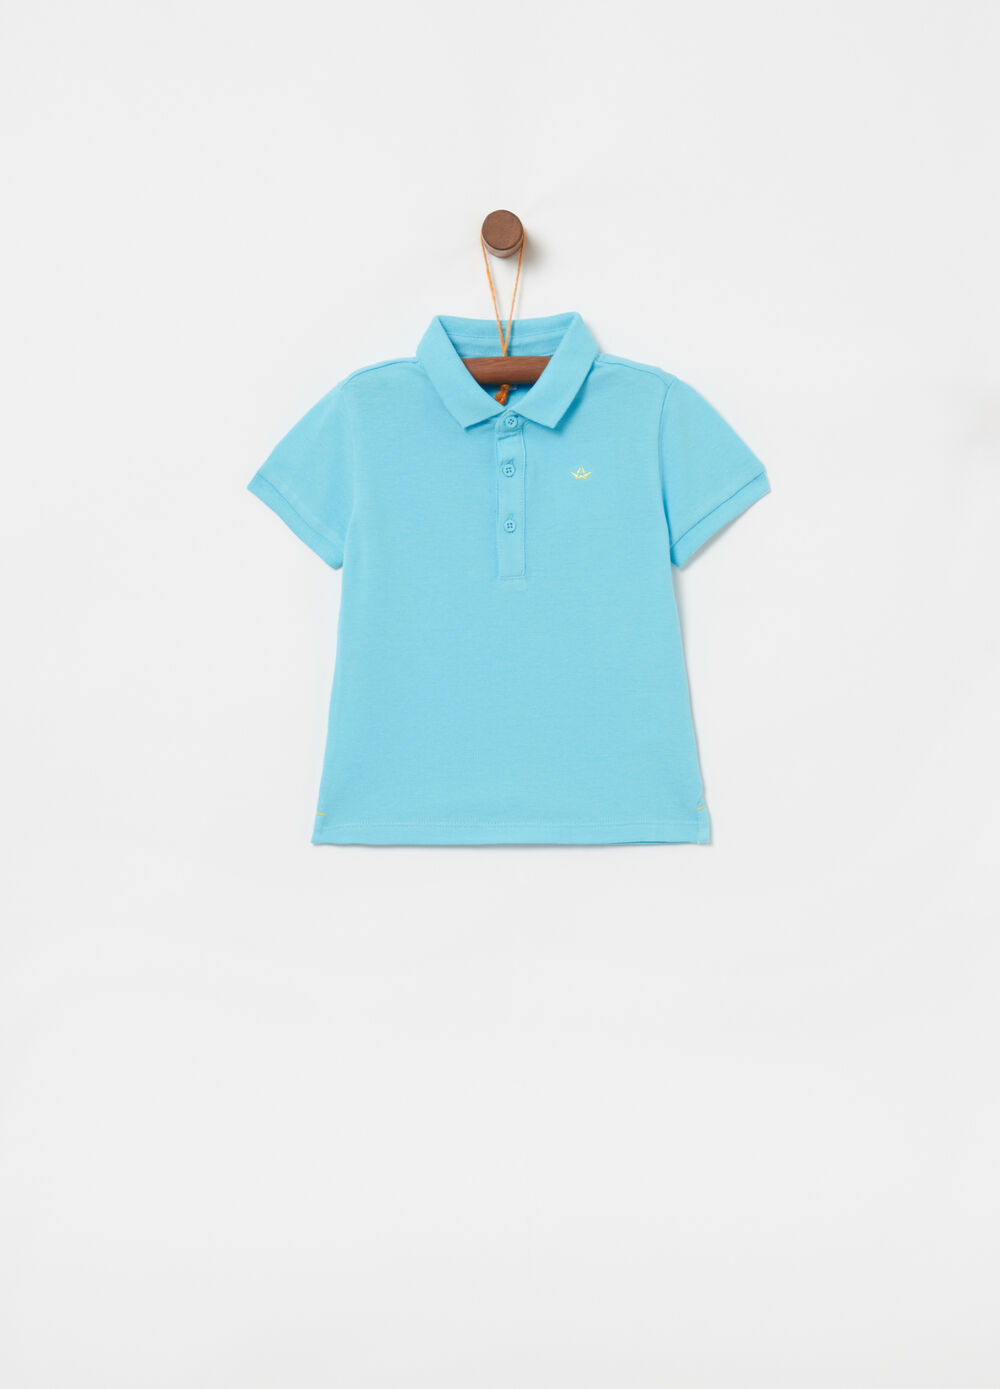 Cotton piquet polo shirt with boat embroidery